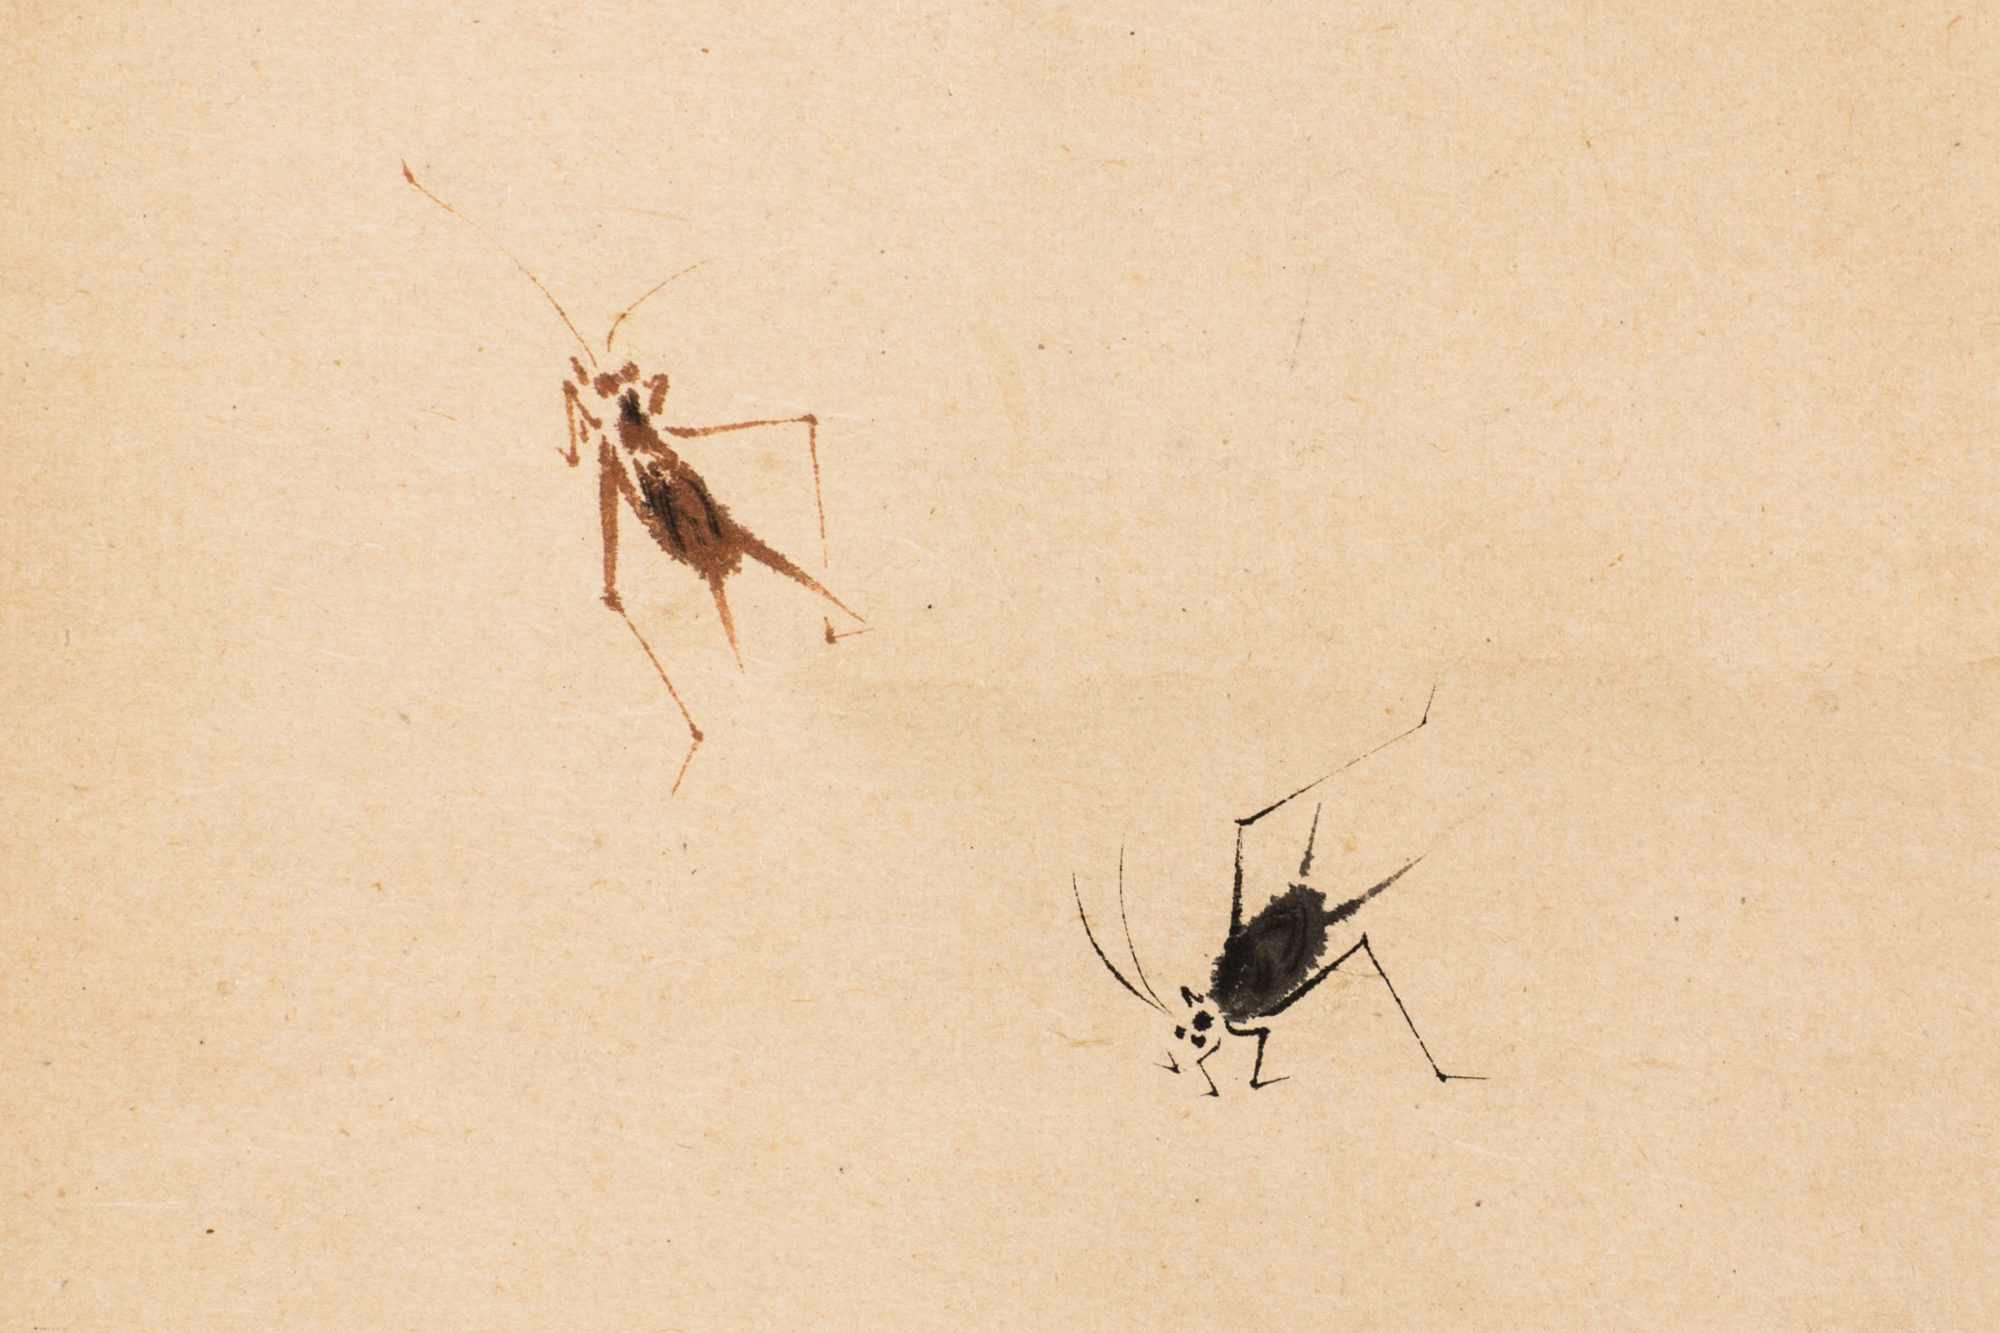 Japanese Antique Scroll of Crickets